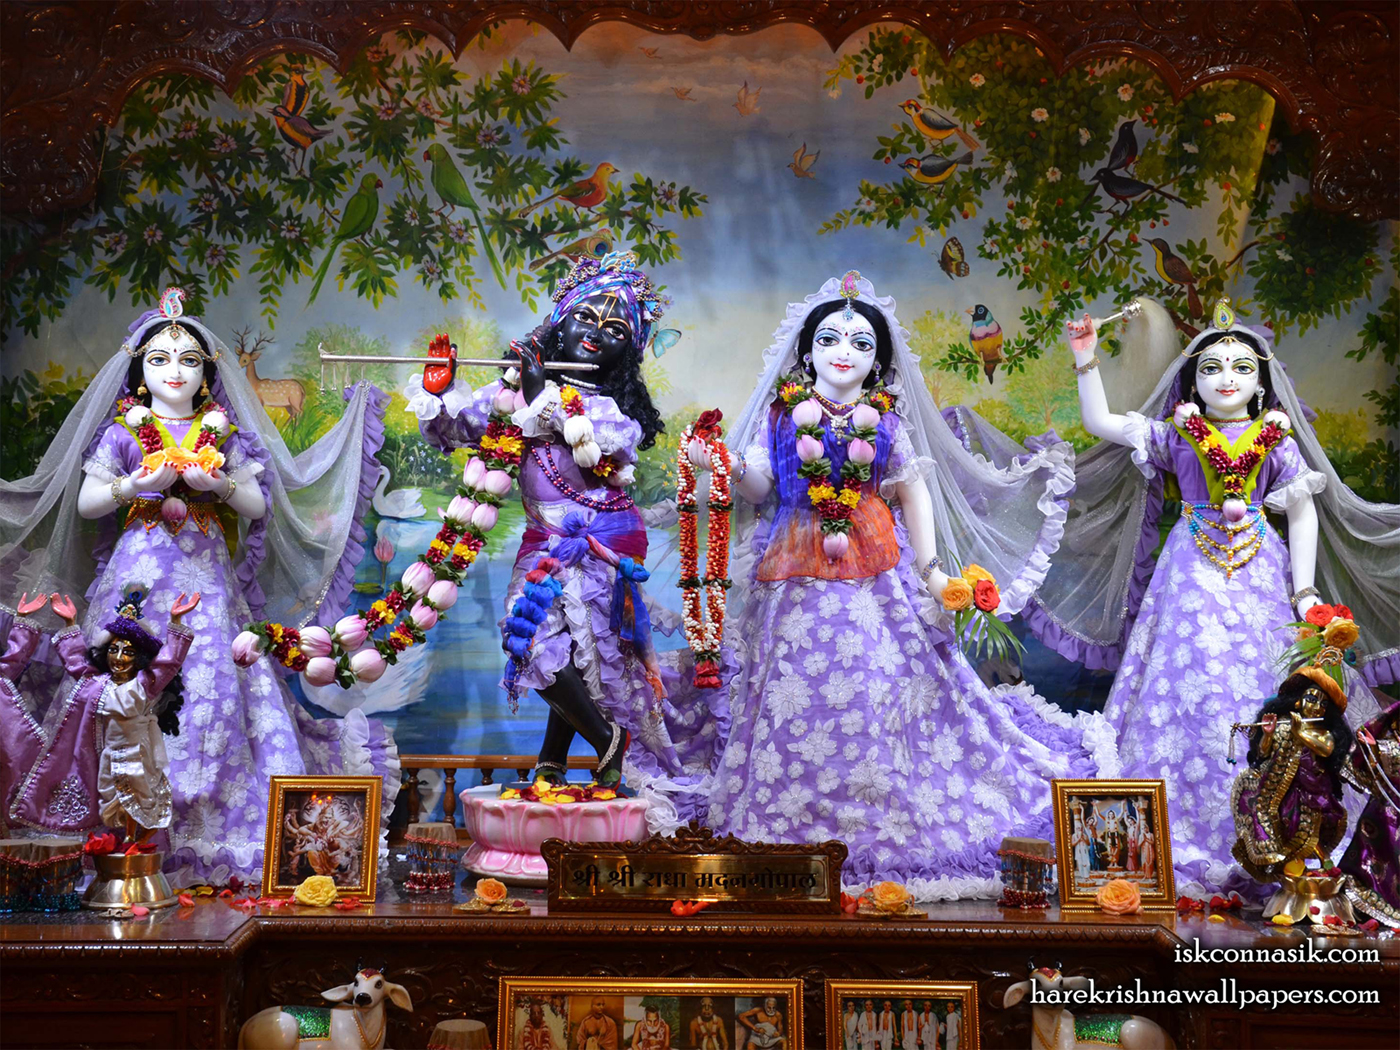 Sri Sri Radha Madan Gopal Lalita Vishakha Wallpaper (002) Size 1400x1050 Download